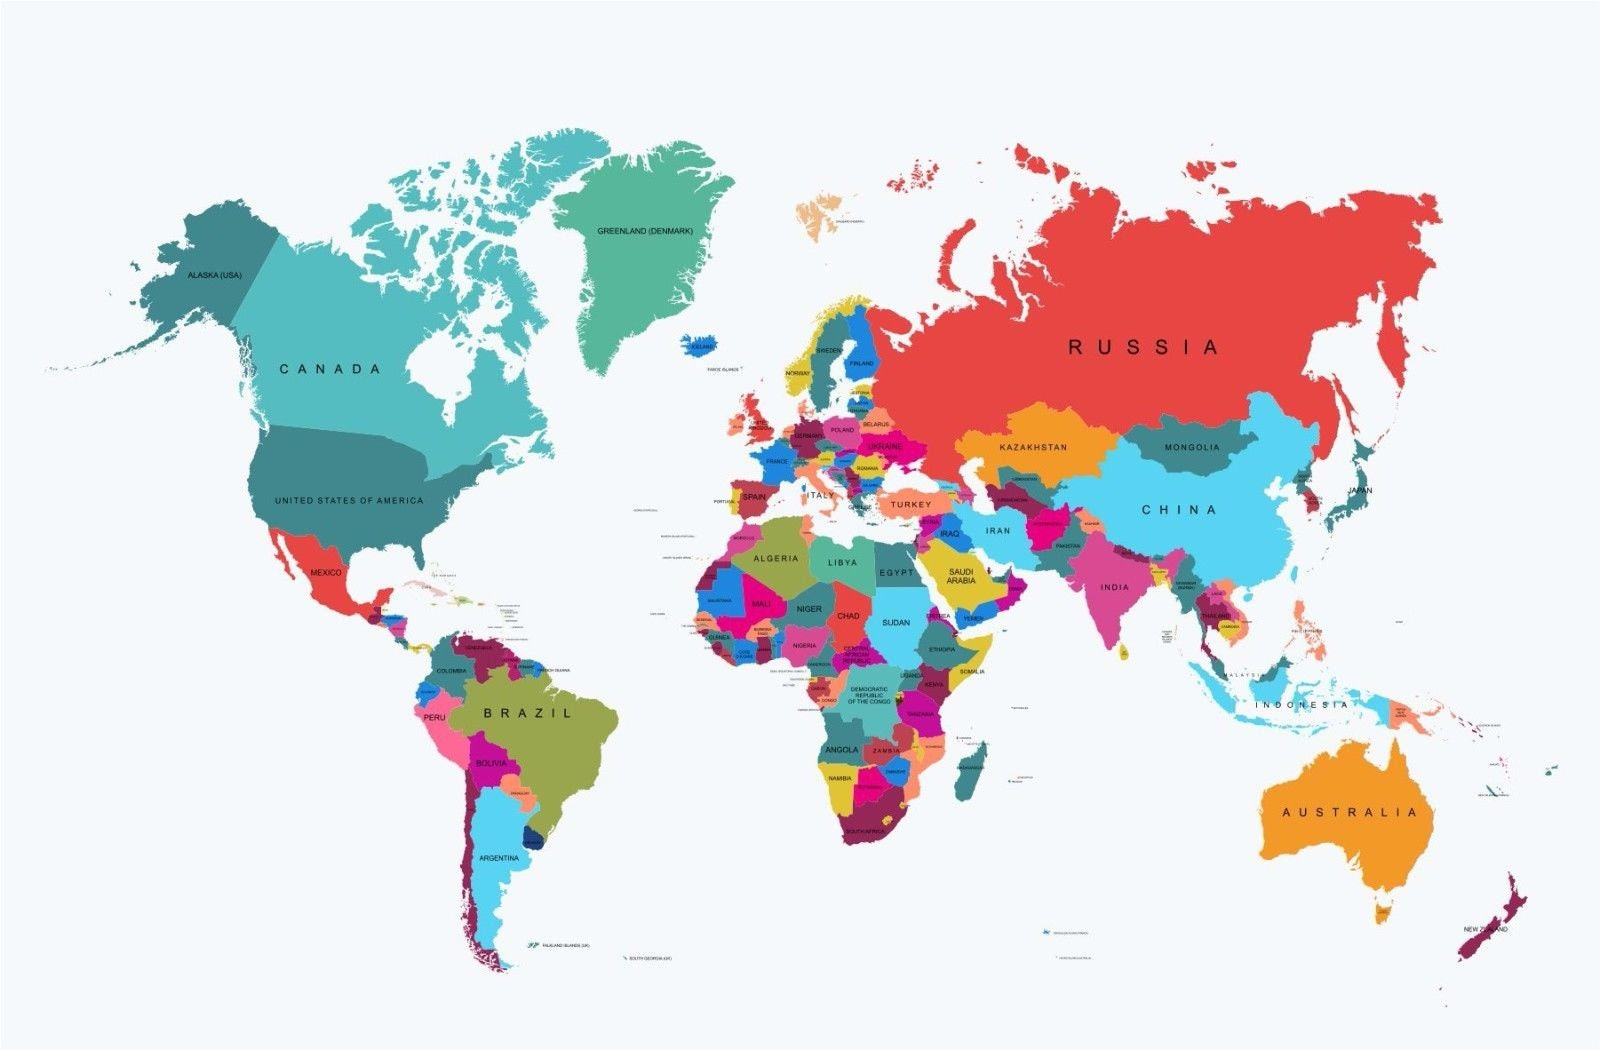 Giant World Map WALL BRAND NEW Sizes A1 A2 A3 A4 Poster Wall